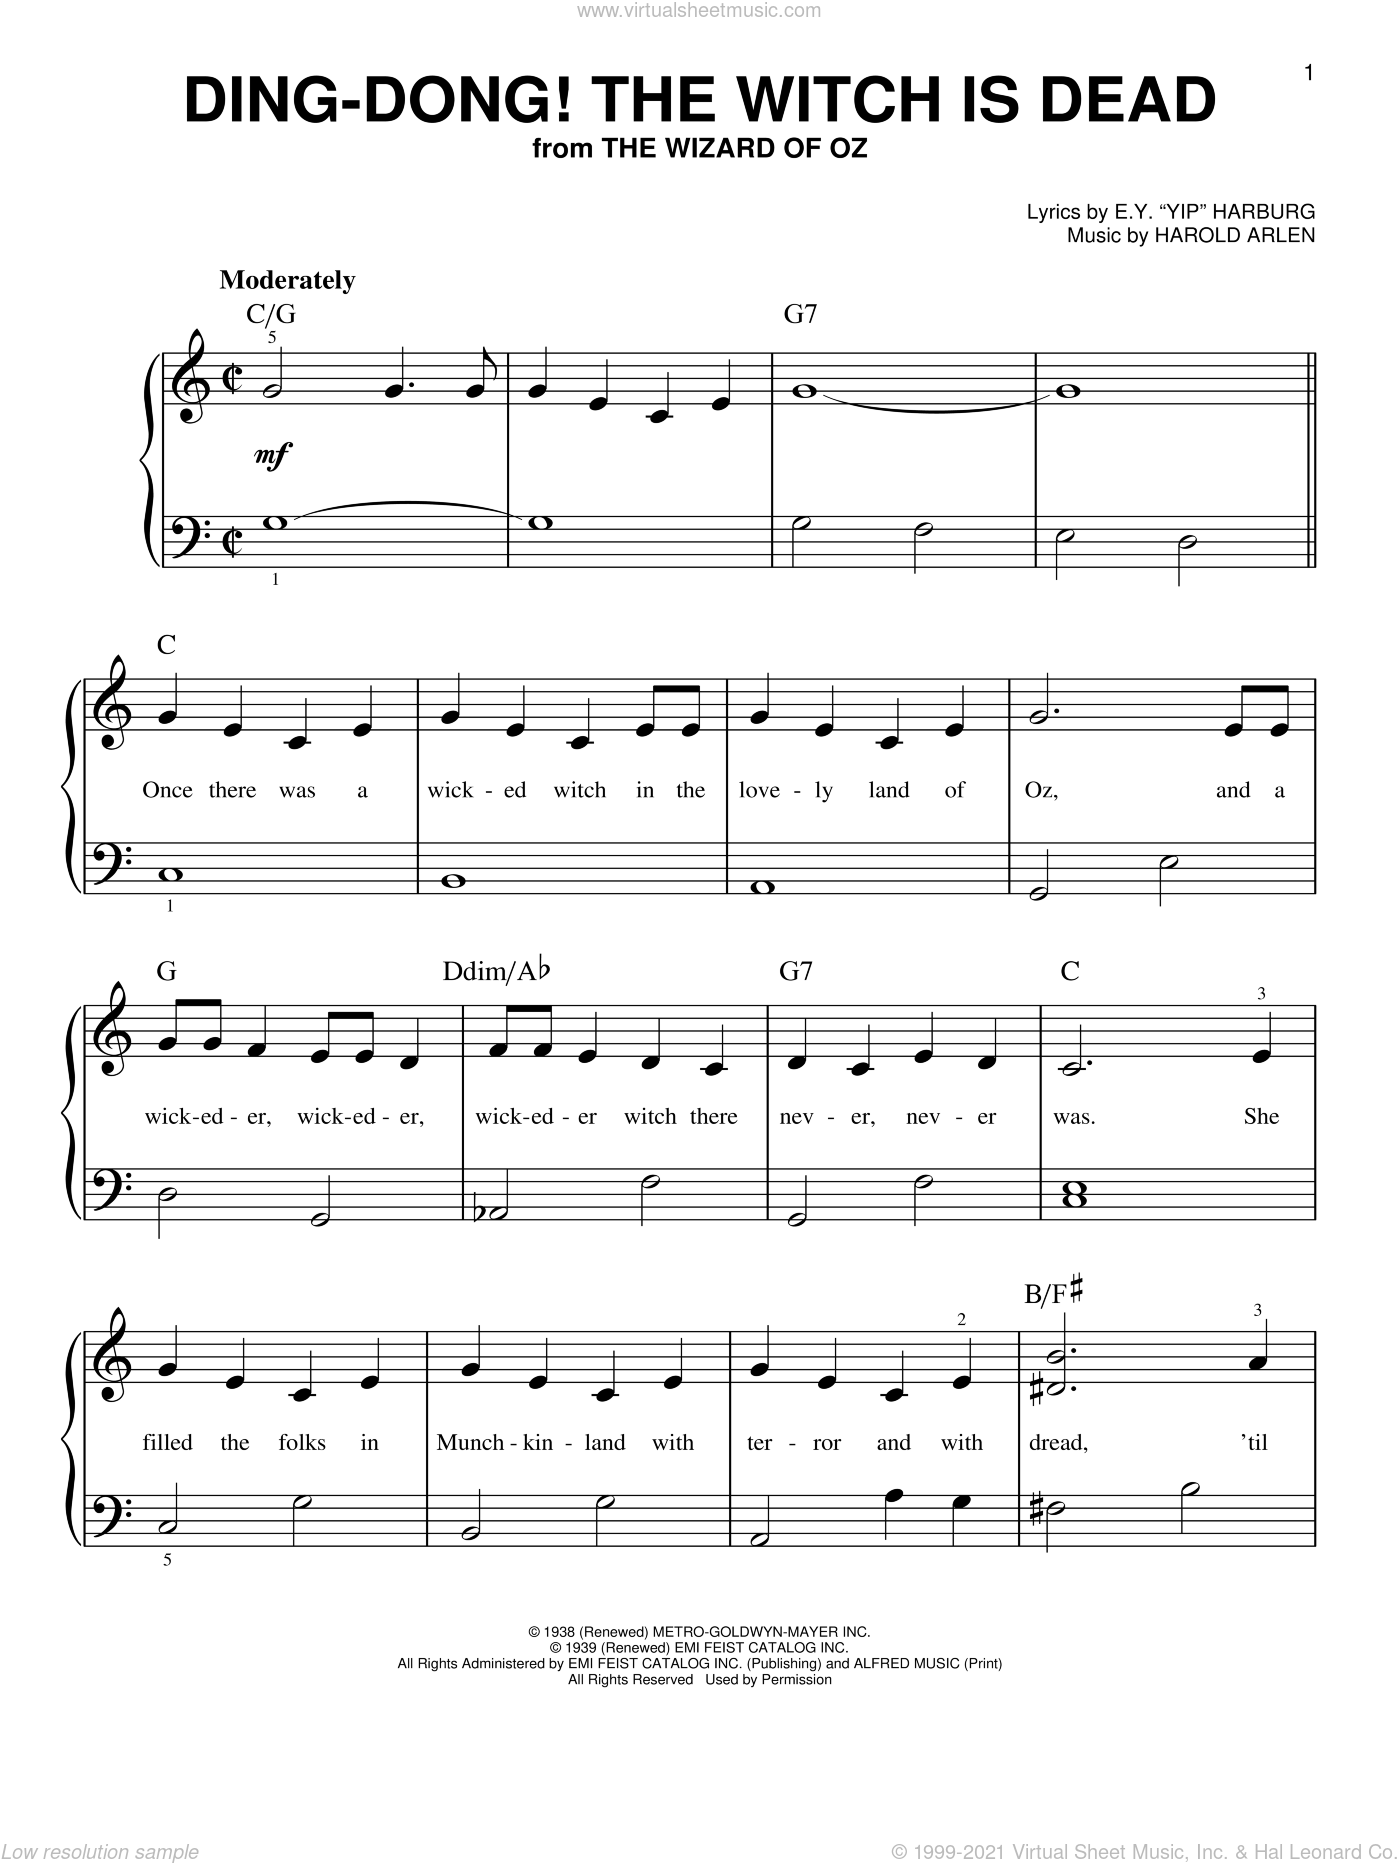 Ding-Dong! The Witch Is Dead sheet music for piano solo by Harold Arlen and E.Y. Harburg, beginner skill level